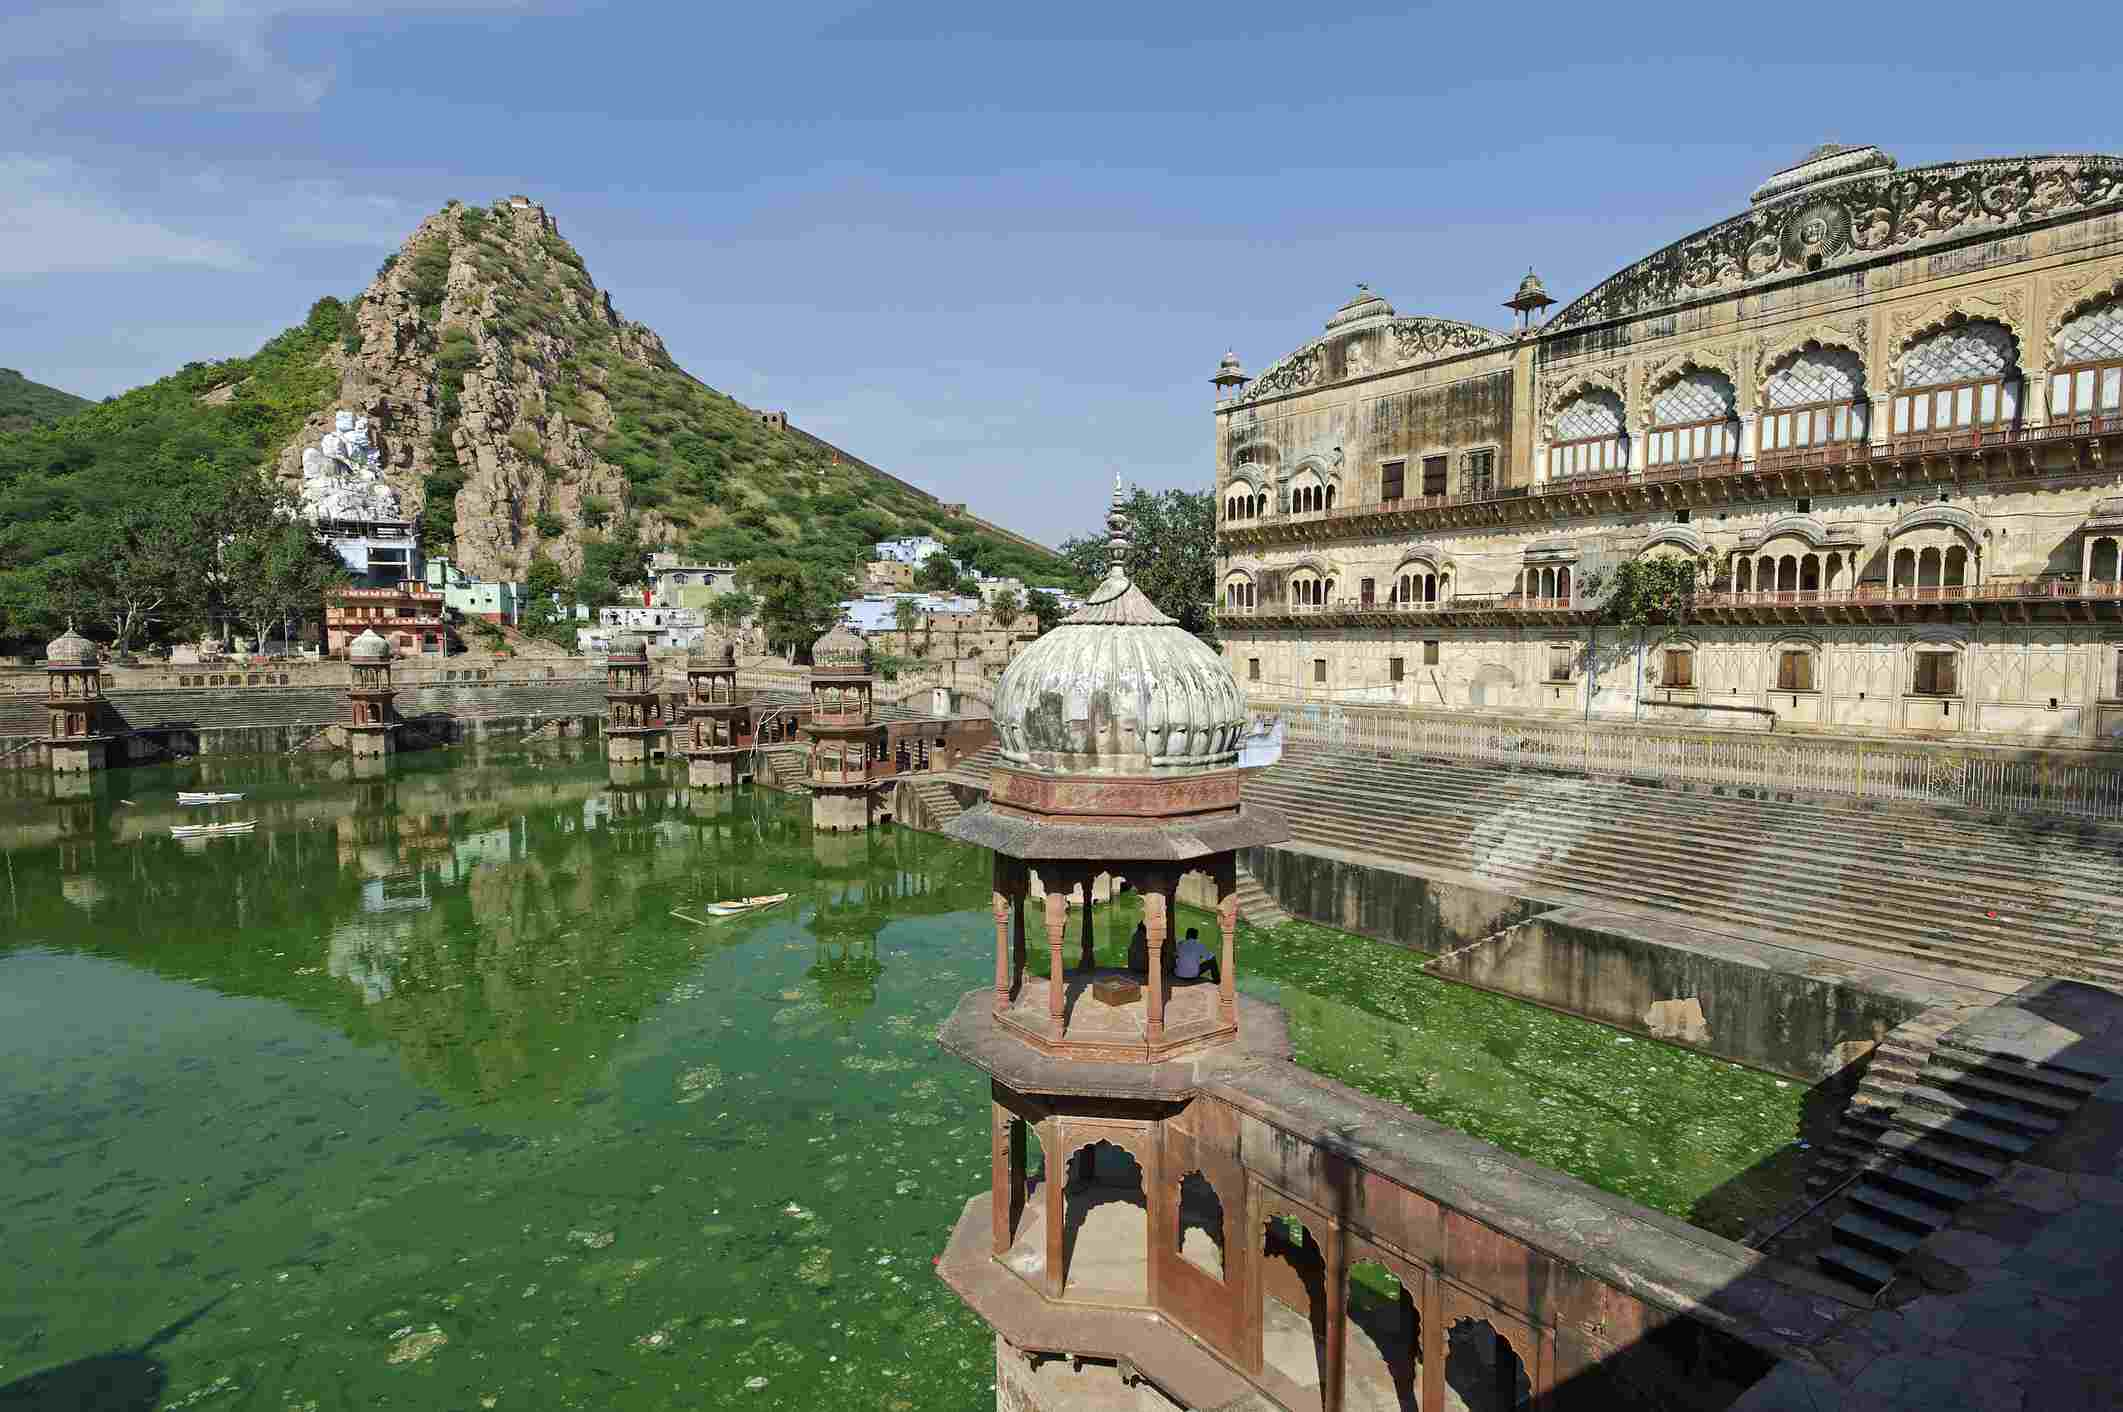 India, Rajasthan, Alwar. A large water tank with pleasure pavilions stands behind Alwar's City Palace